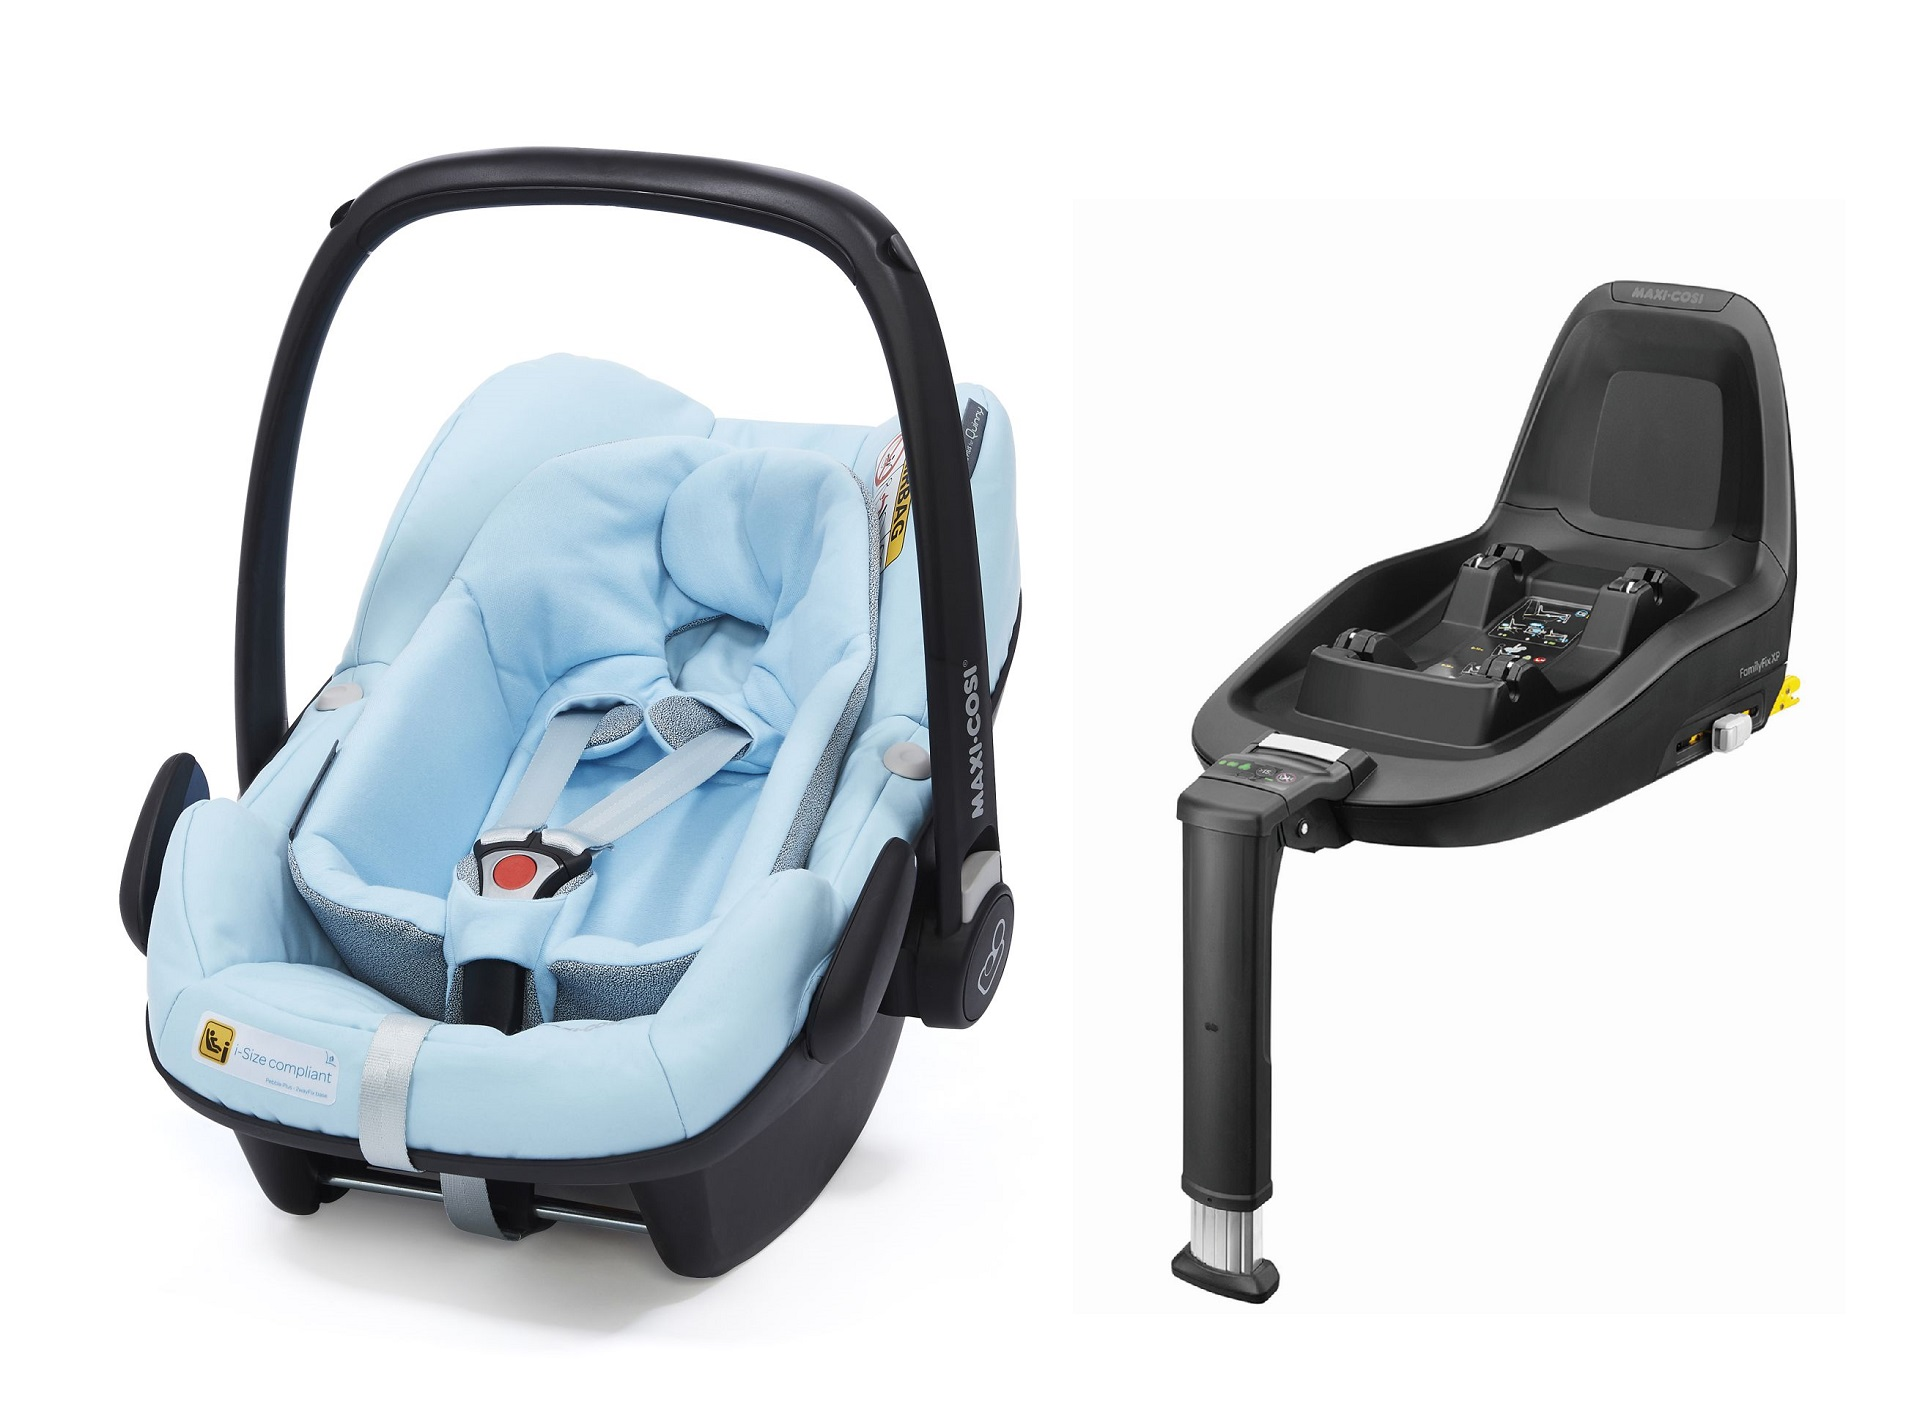 maxi cosi infant car seat pebble plus including 2wayfix buy at kidsroom car seats. Black Bedroom Furniture Sets. Home Design Ideas